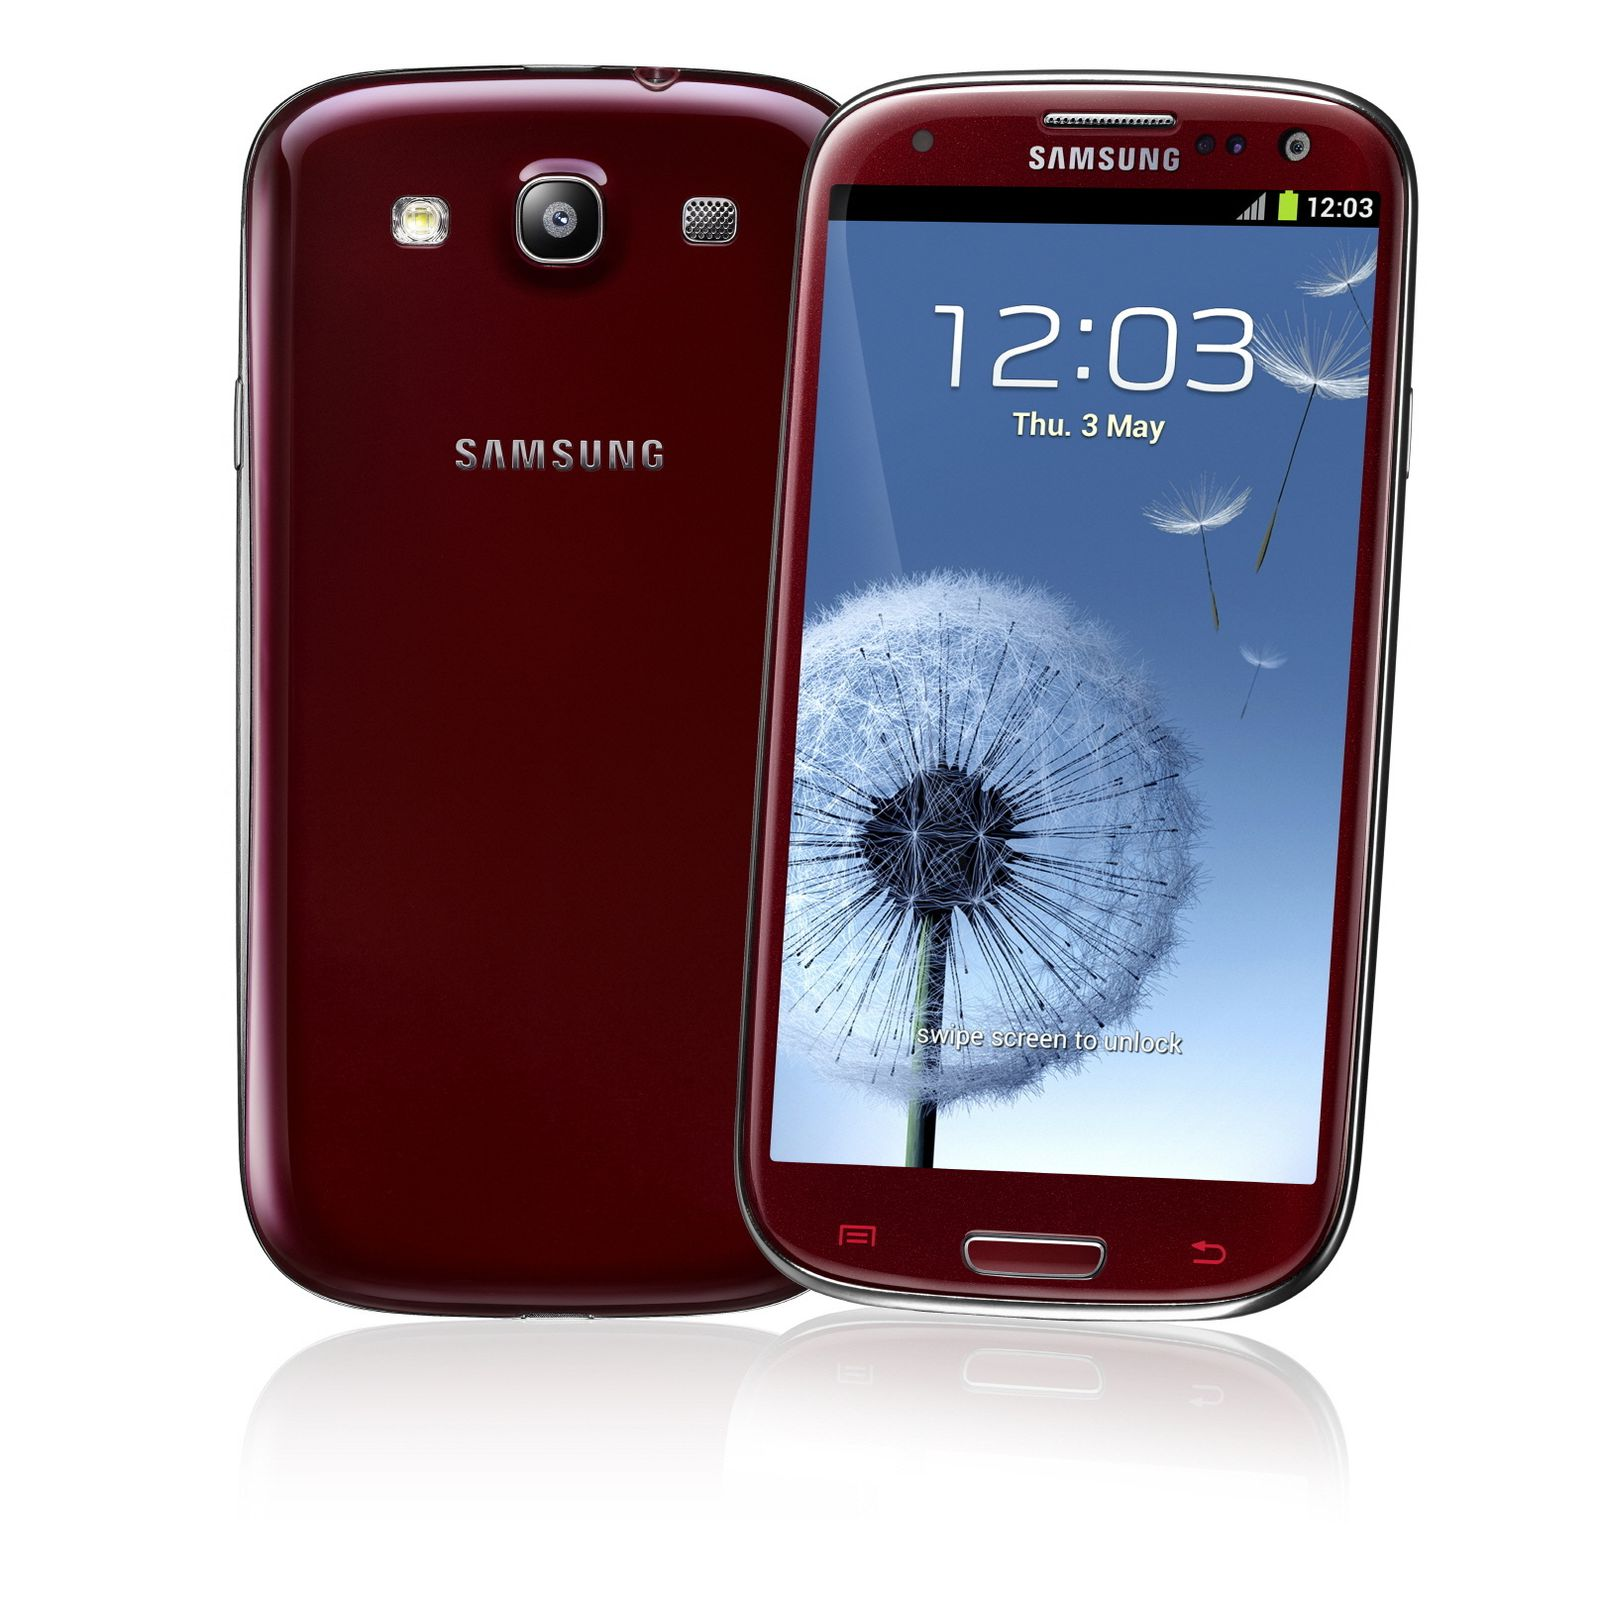 samsung galaxy siii gt i9300 16gb rot preis 448 bei. Black Bedroom Furniture Sets. Home Design Ideas